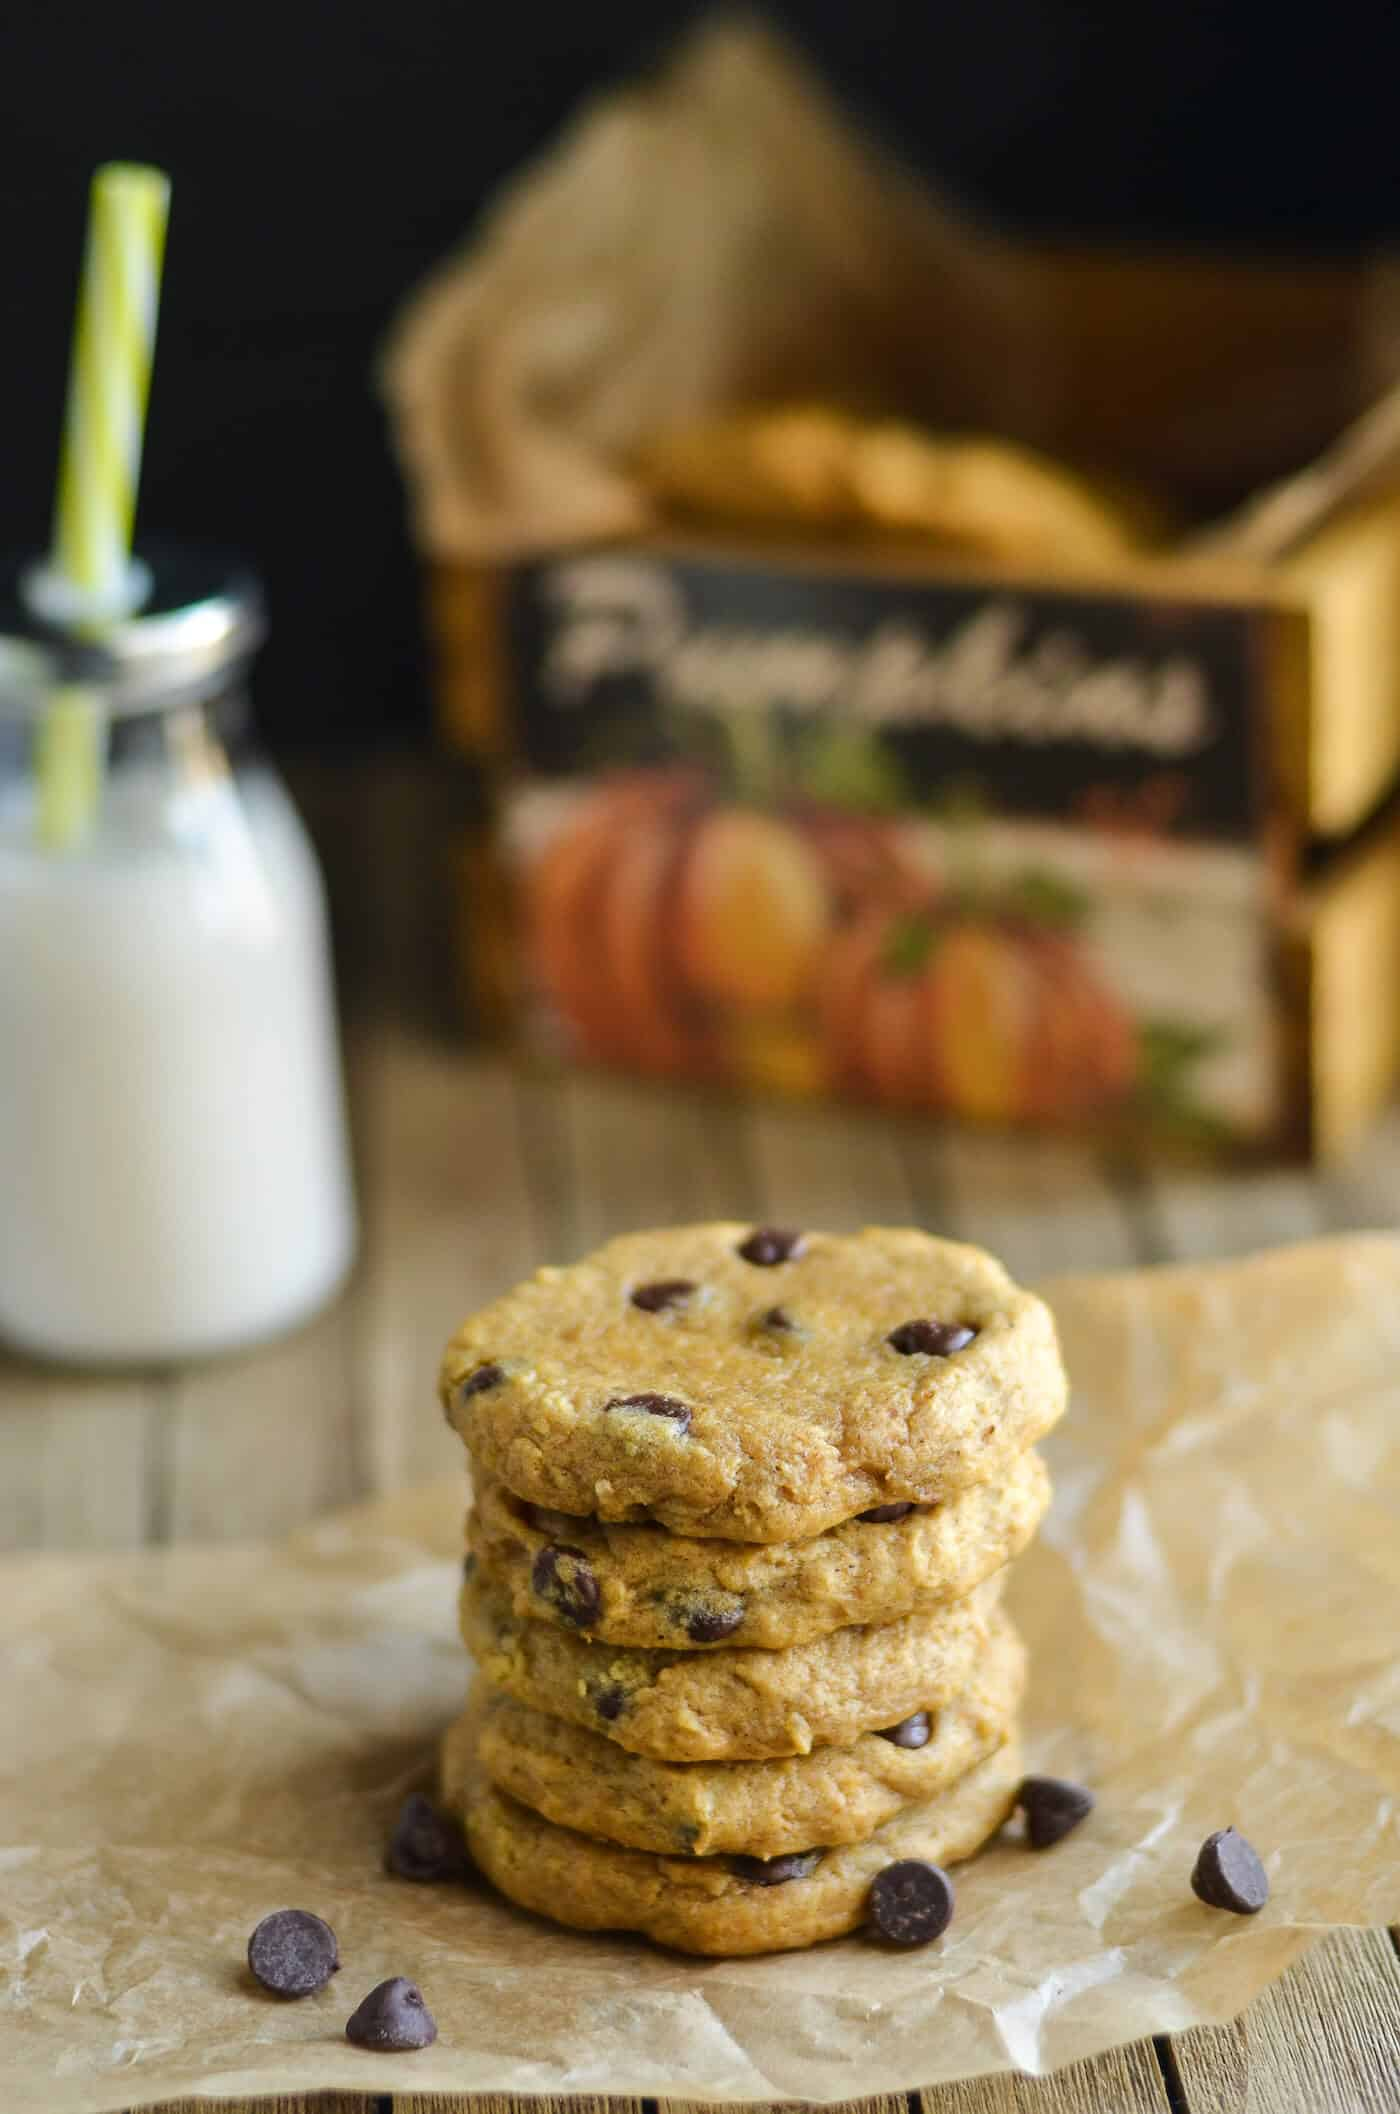 Indulge in your favorite fall flavor with this pumpkin chocolate chip cookie recipe! Soft, chewy, and delicious. These are the perfect consistency!